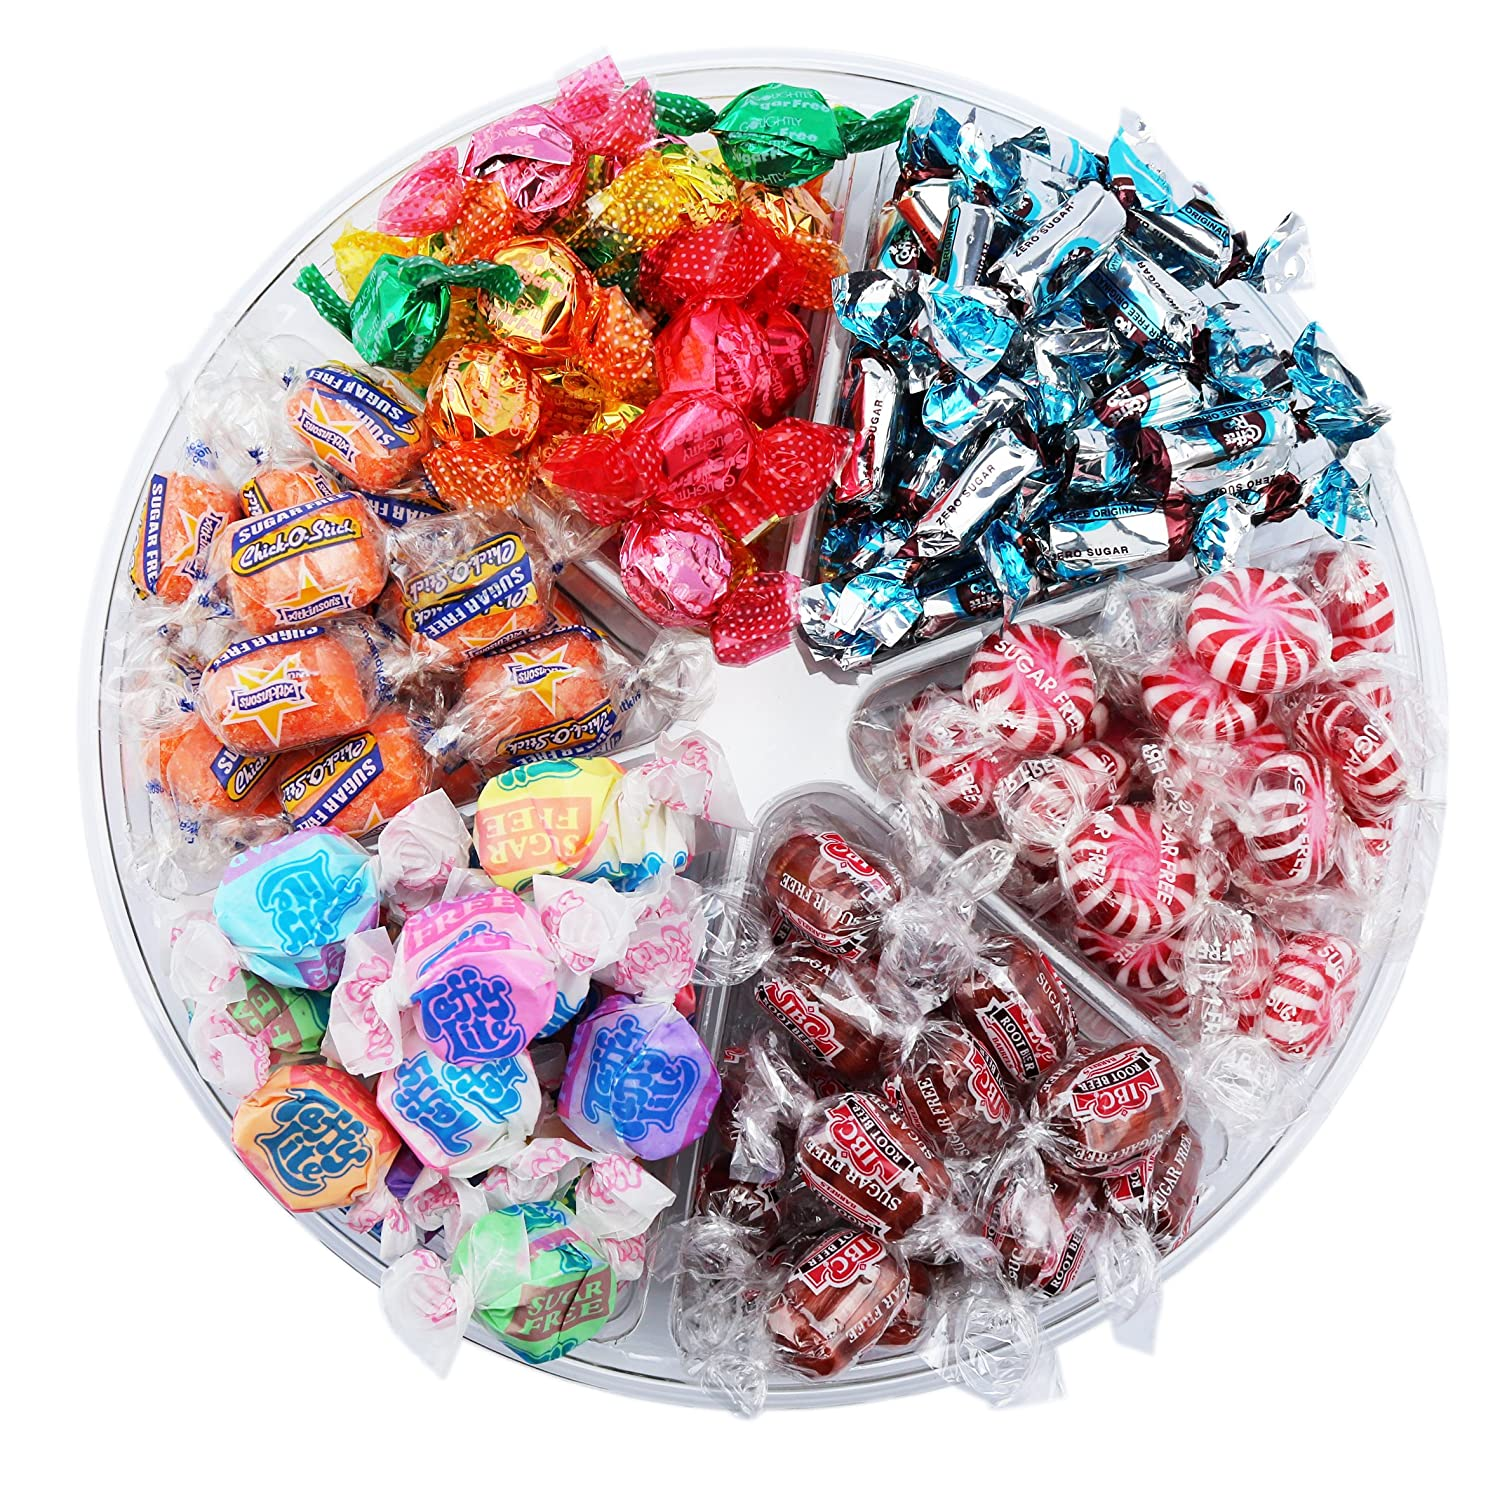 Amazon firstchoicecandy sugar free candy gift tray 6 section amazon firstchoicecandy sugar free candy gift tray 6 section no sugar diabetic friendly grocery gourmet food negle Image collections